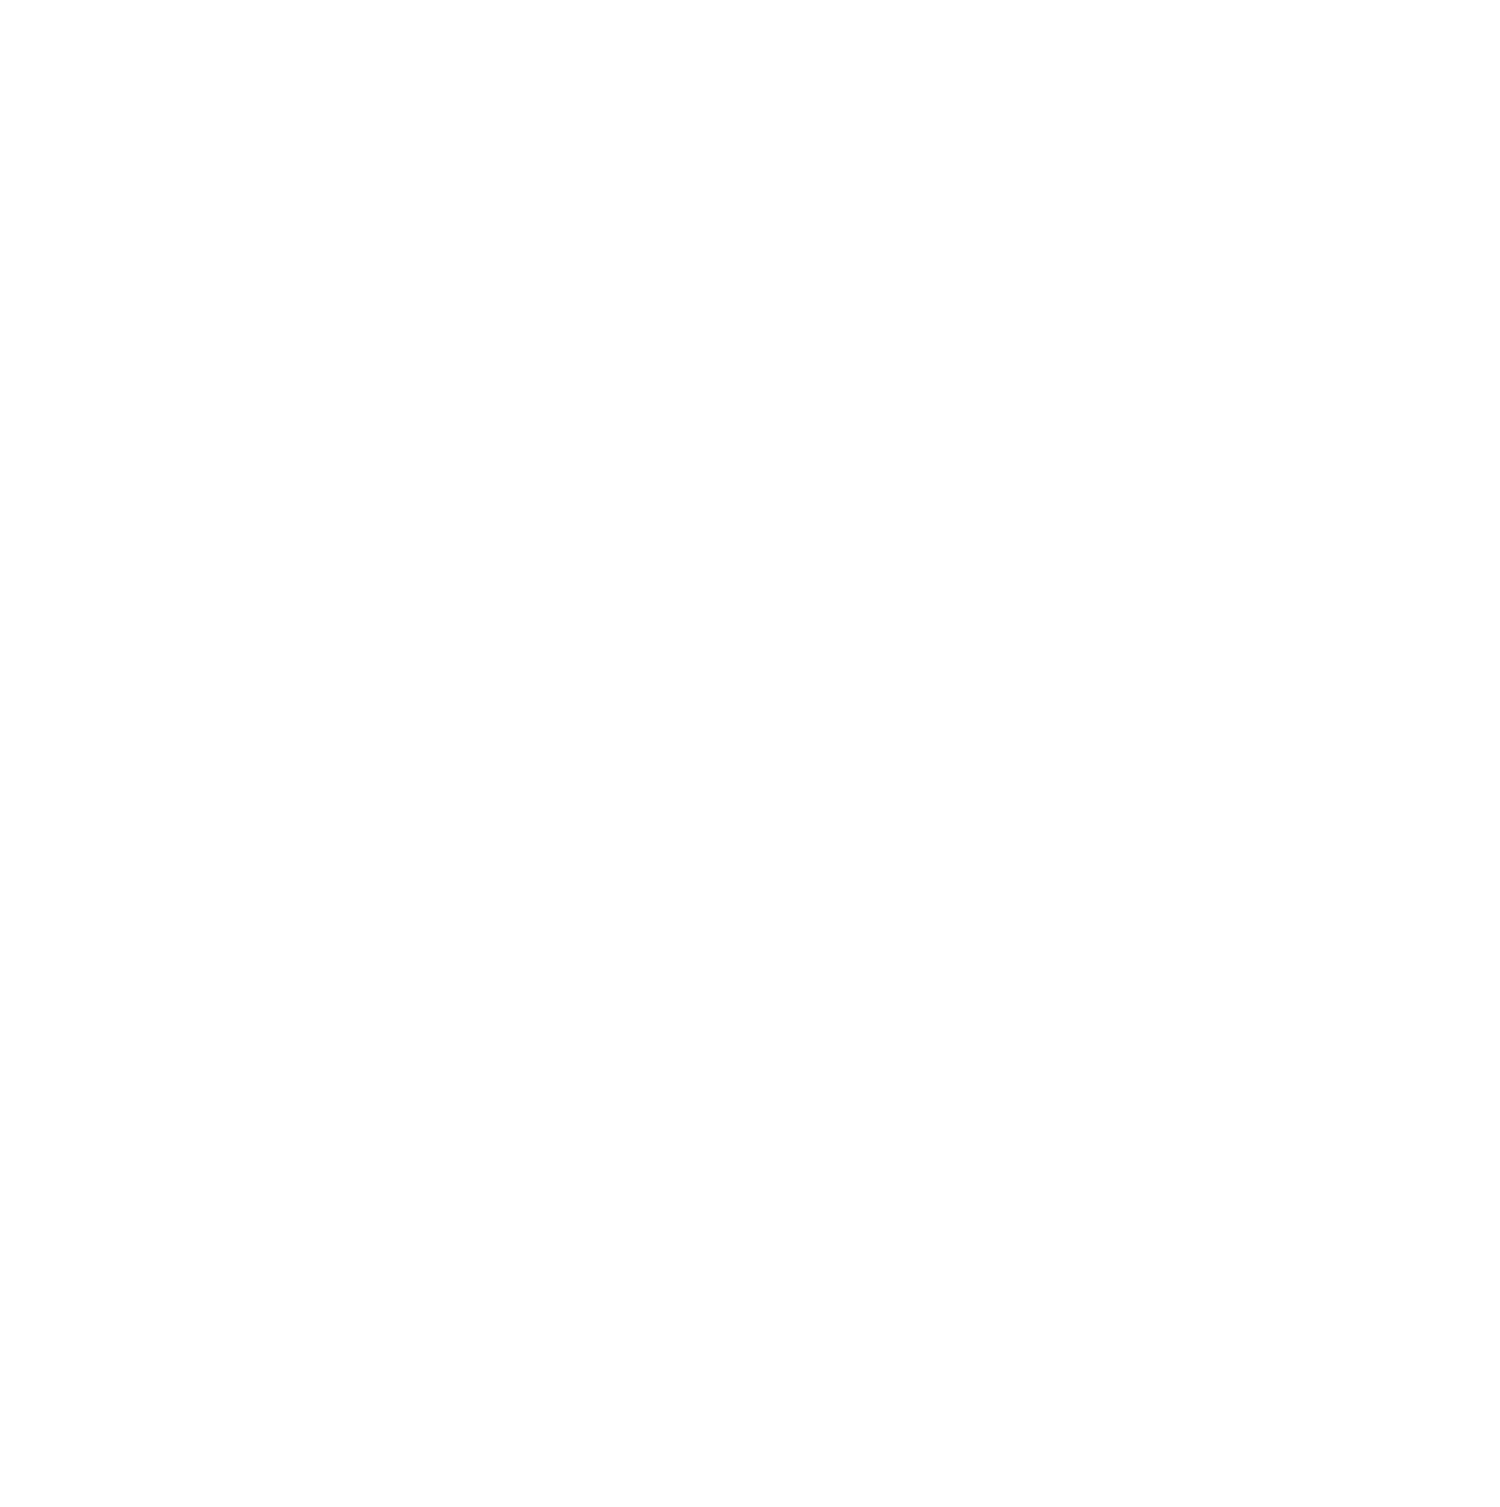 TRI-CITY BARBELL CLUB